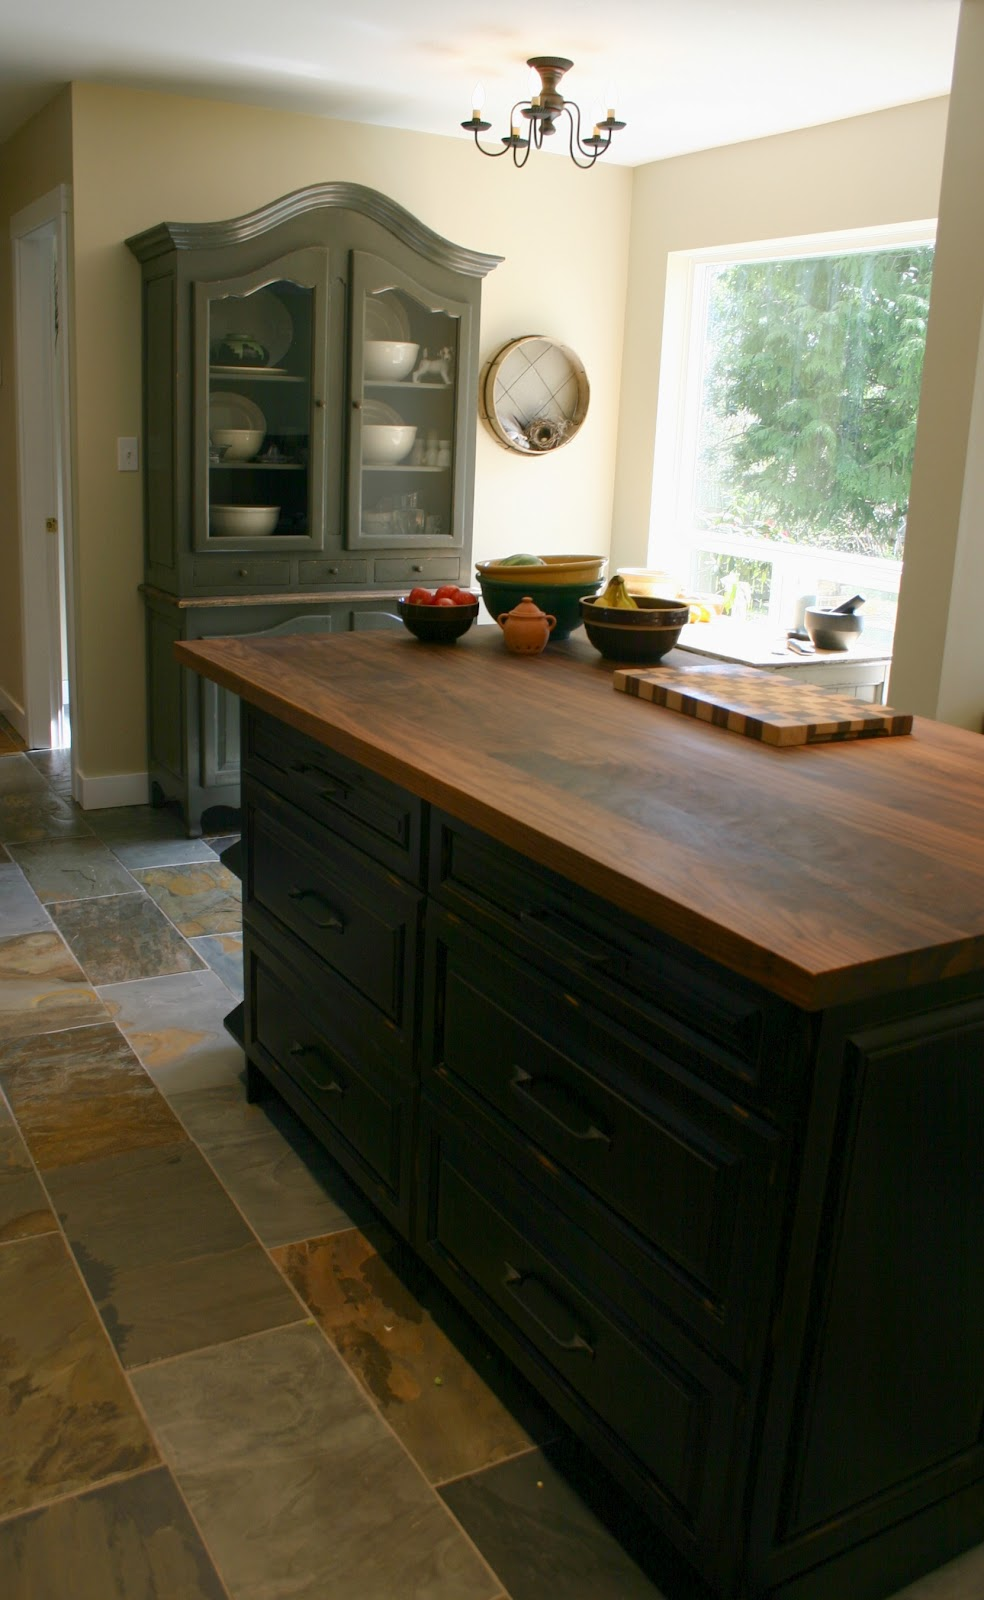 Butcher Block Top Kitchen Cabinets : Mouse Droppings: Kitchen Renos Before & After